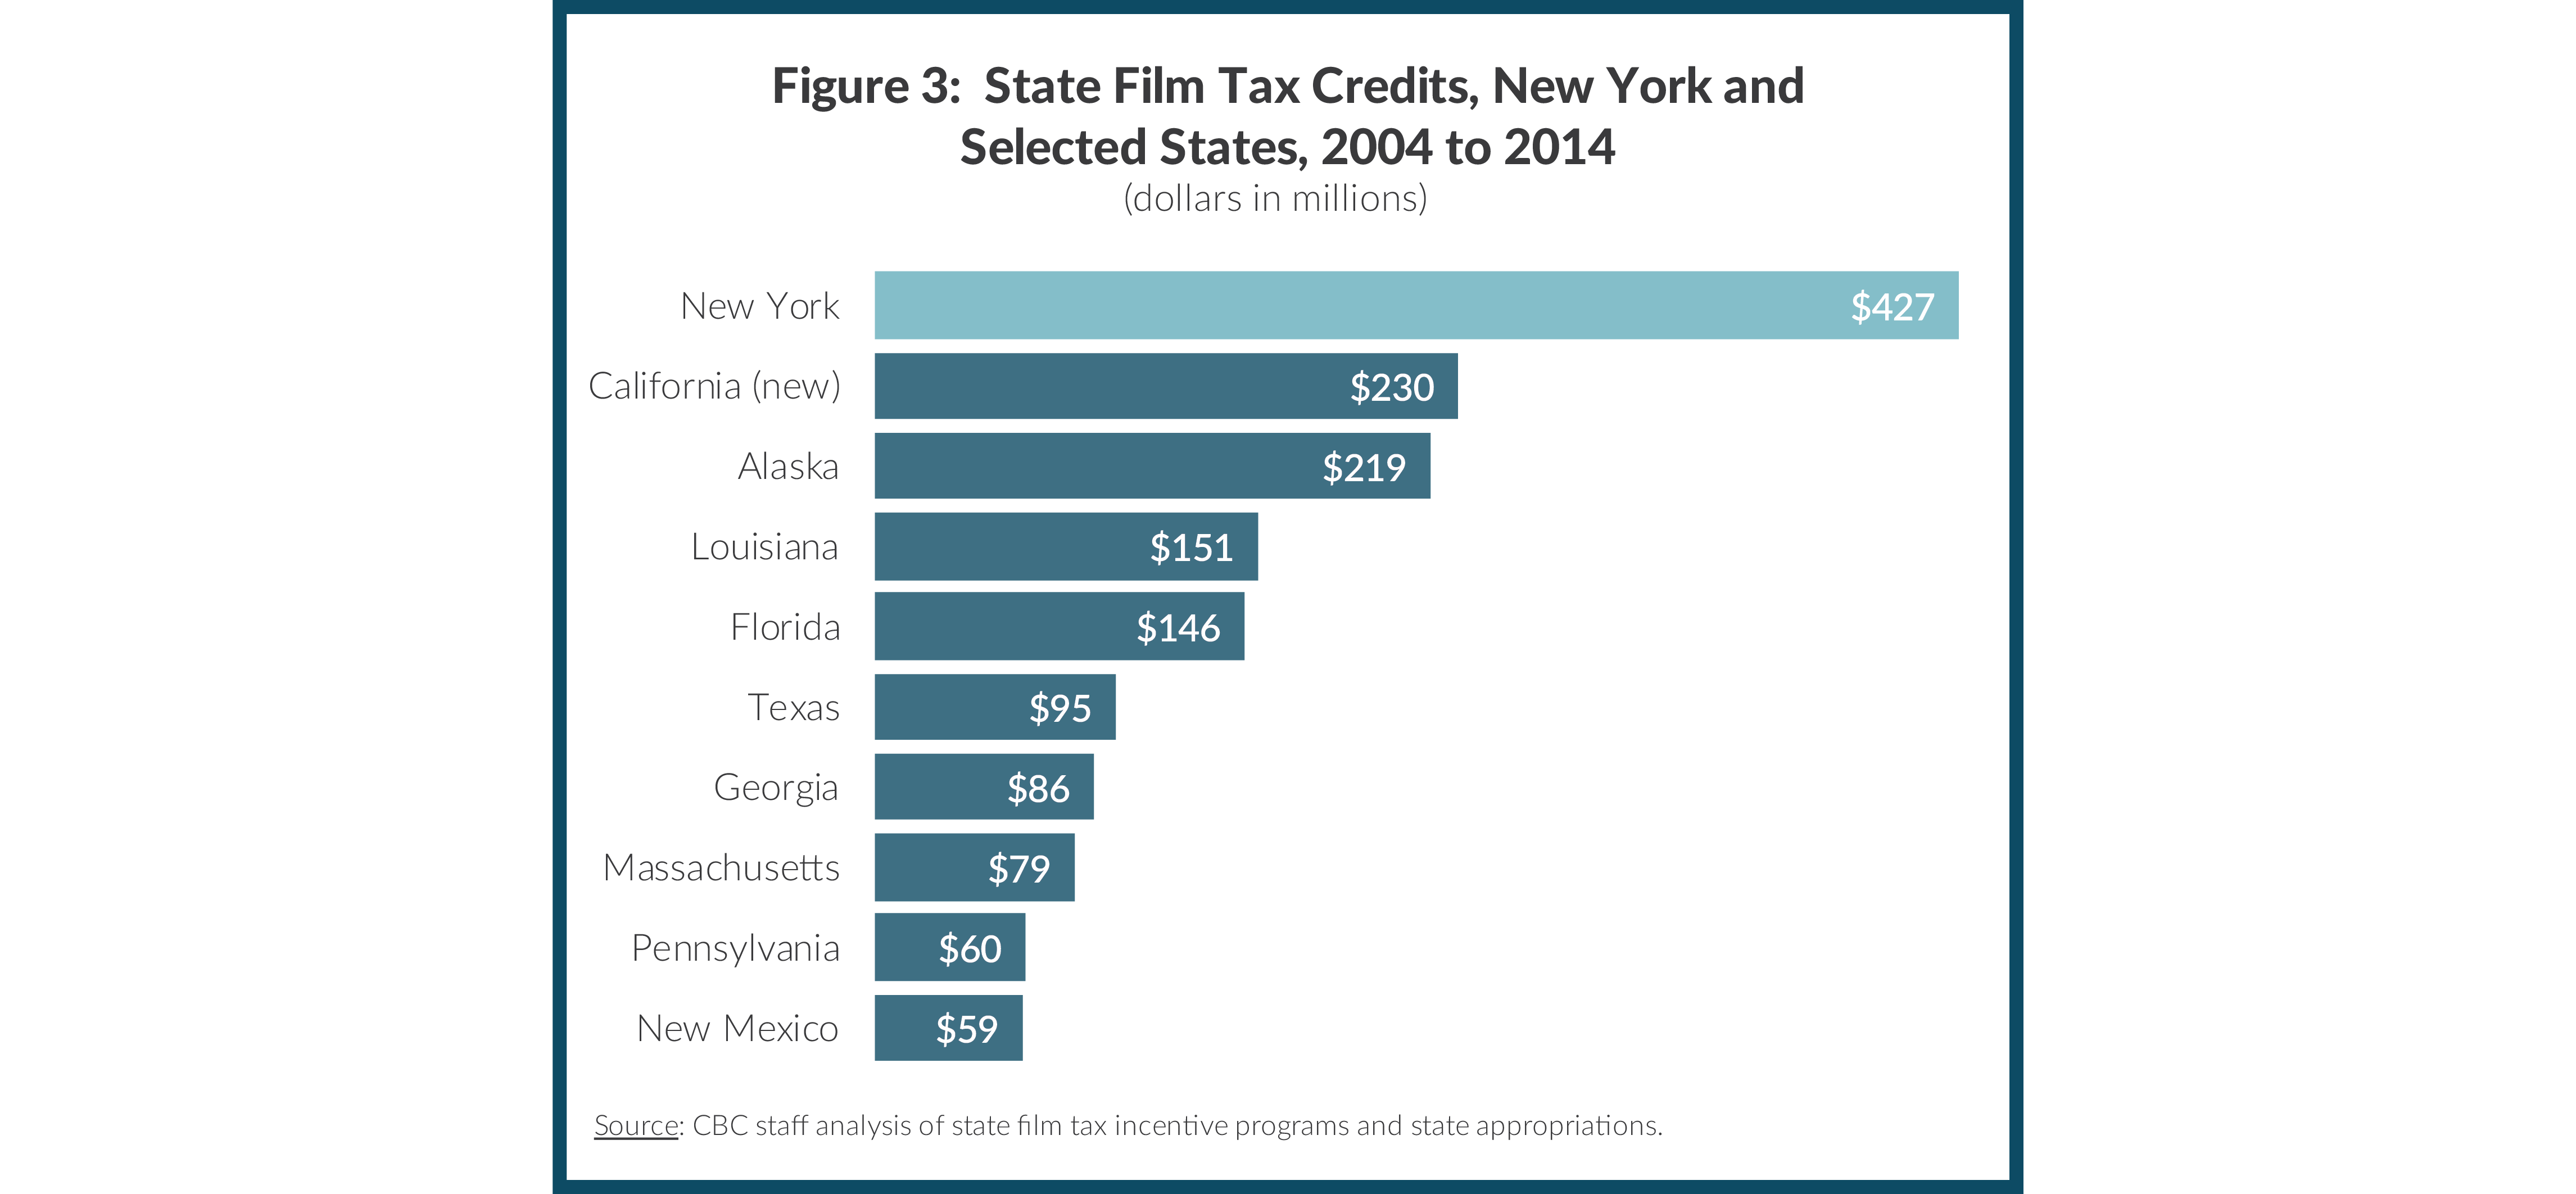 Figure 3:  State Film Tax Credits, New York and Selected States, 2004 to 2014